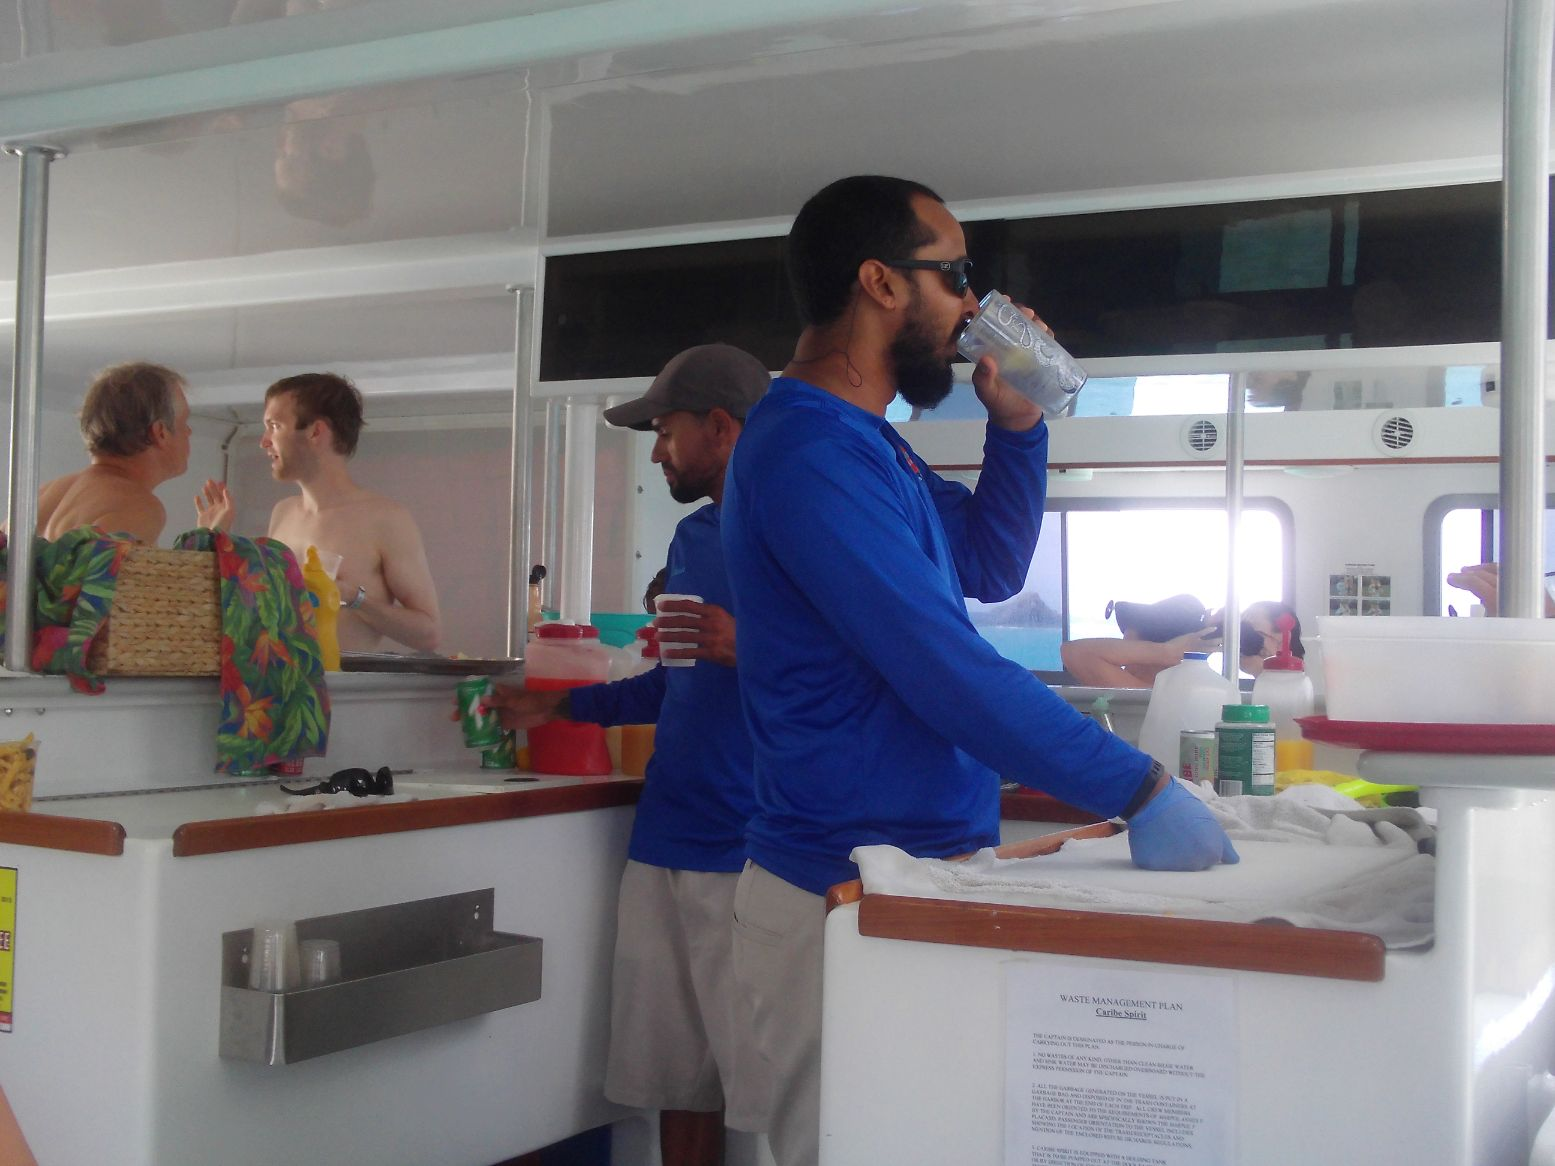 Two of the crew. Must have been 6 or so of them. All very helpful and ready to provide a beverage, tips on wearing the snorkel mask, or (gulp) to bring barf bags.